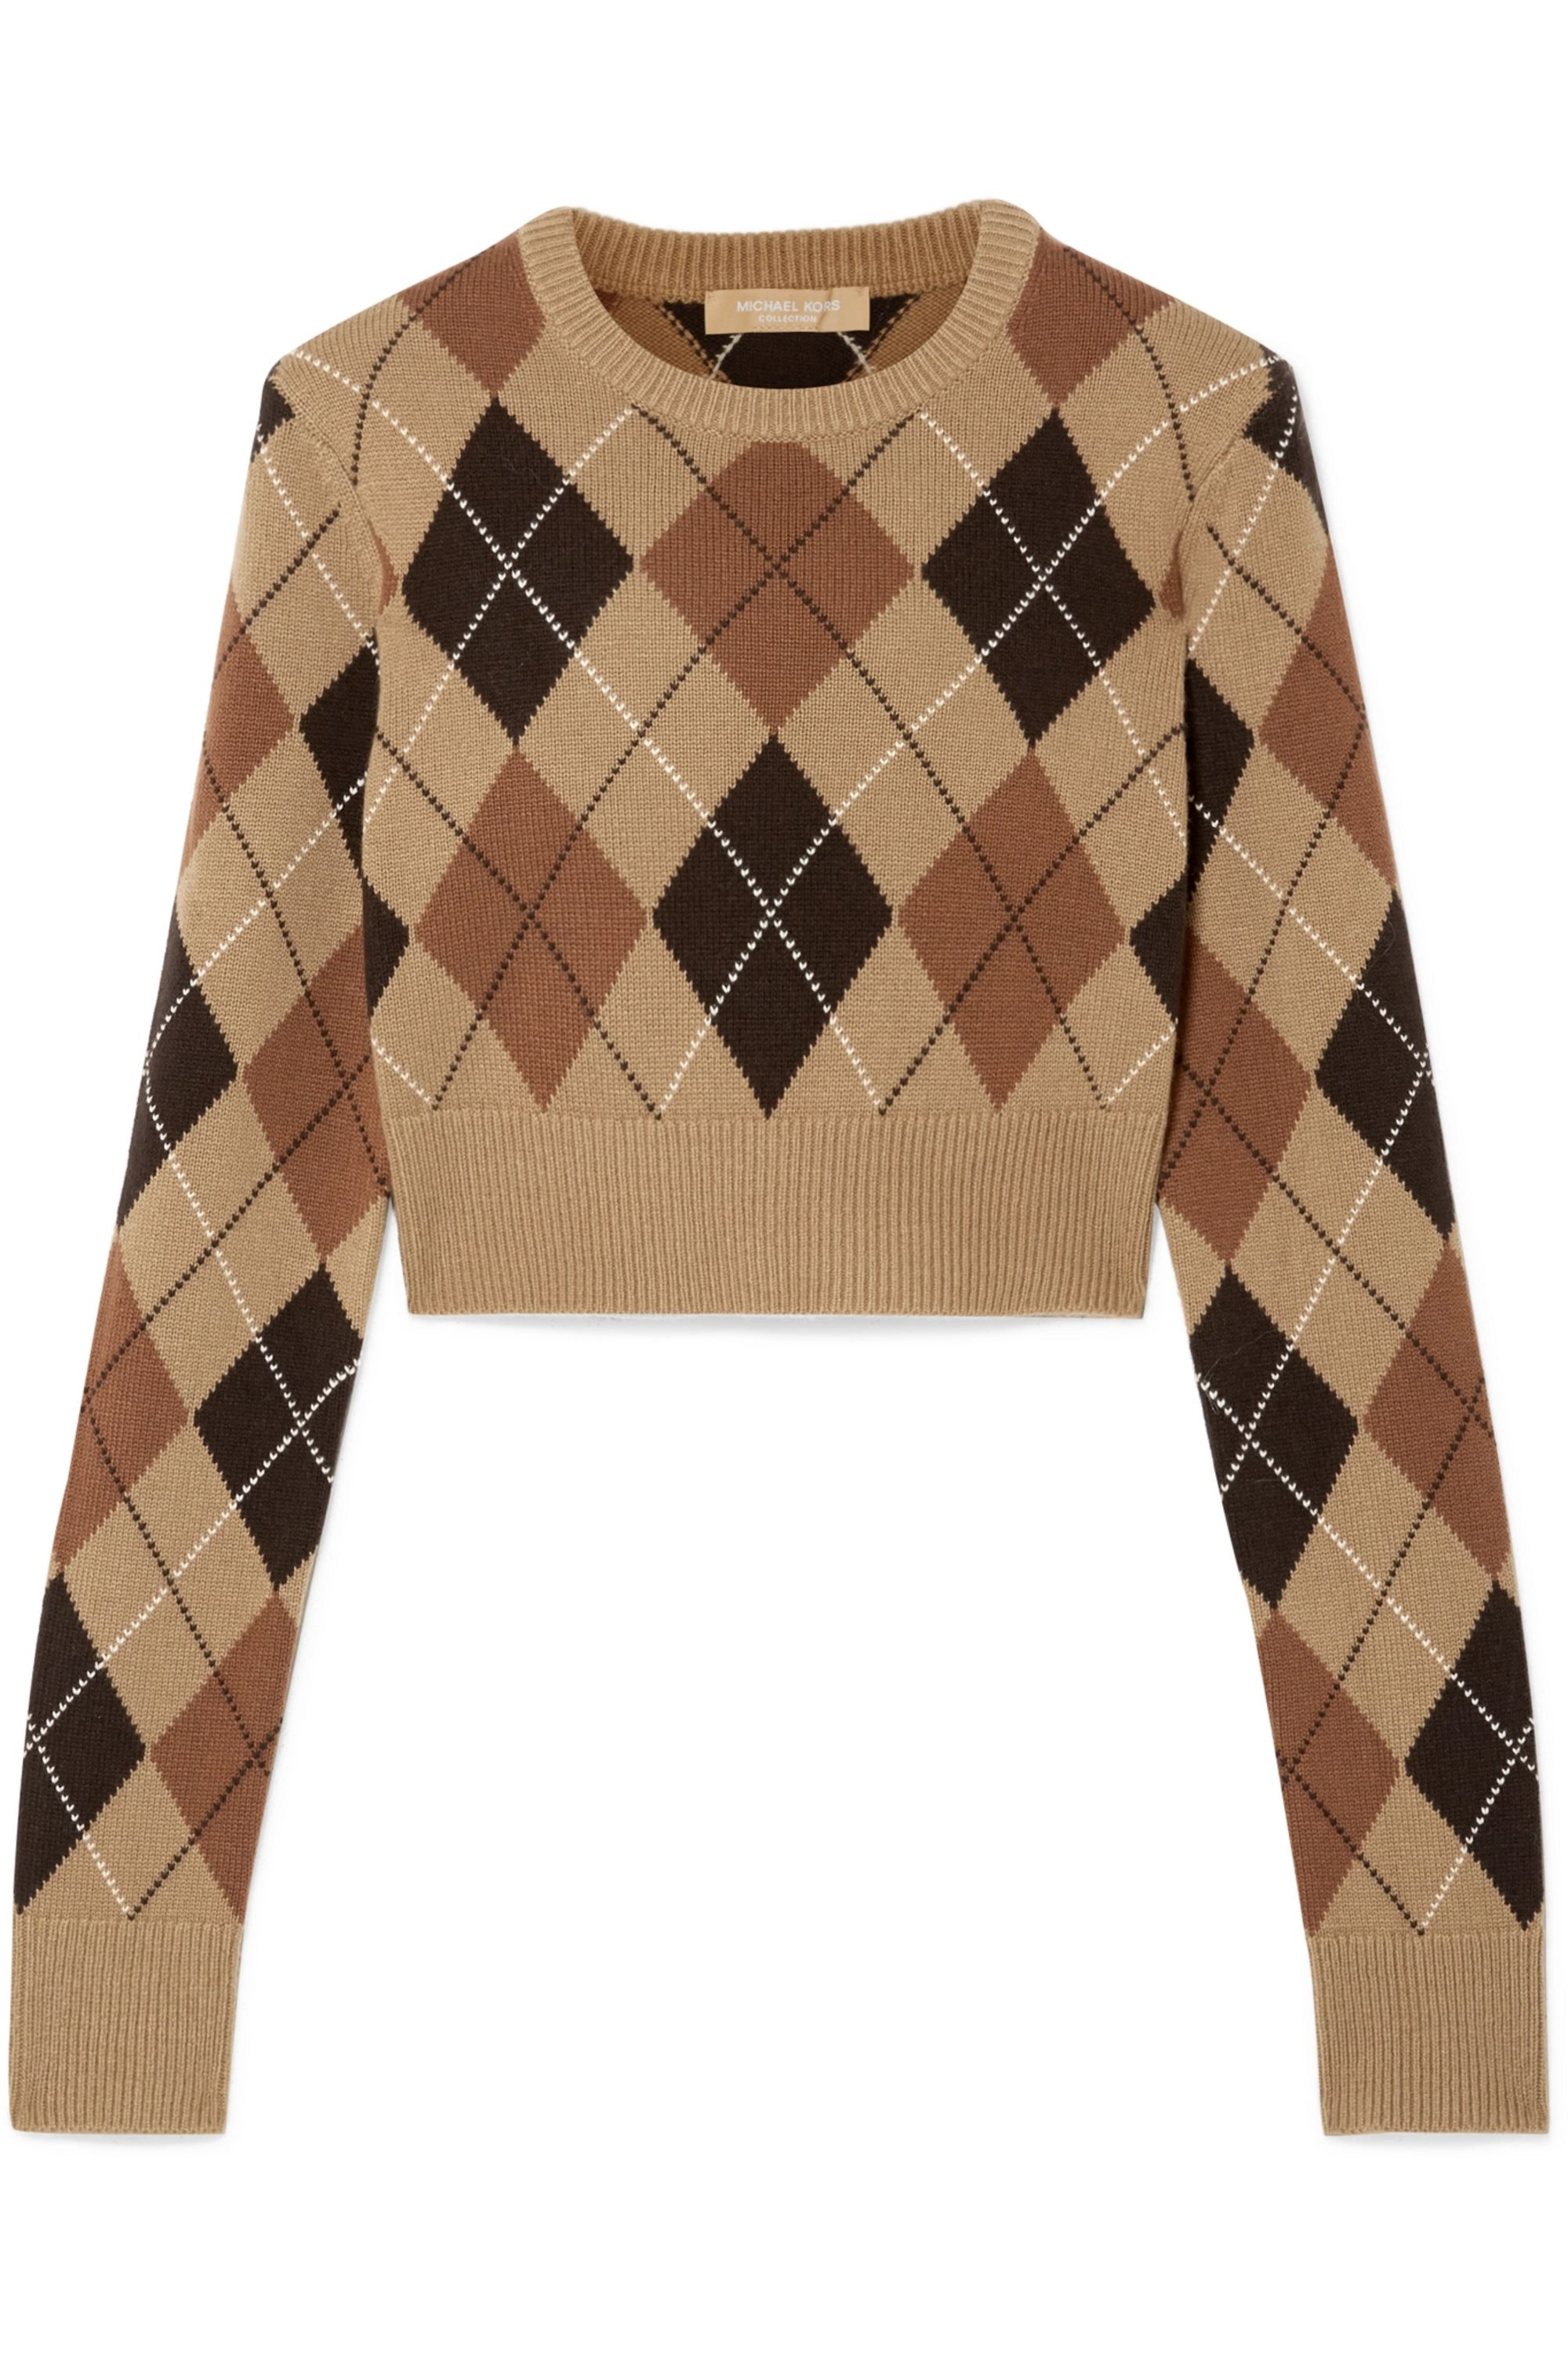 Michael Kors Collection Cropped argyle cashmere sweater